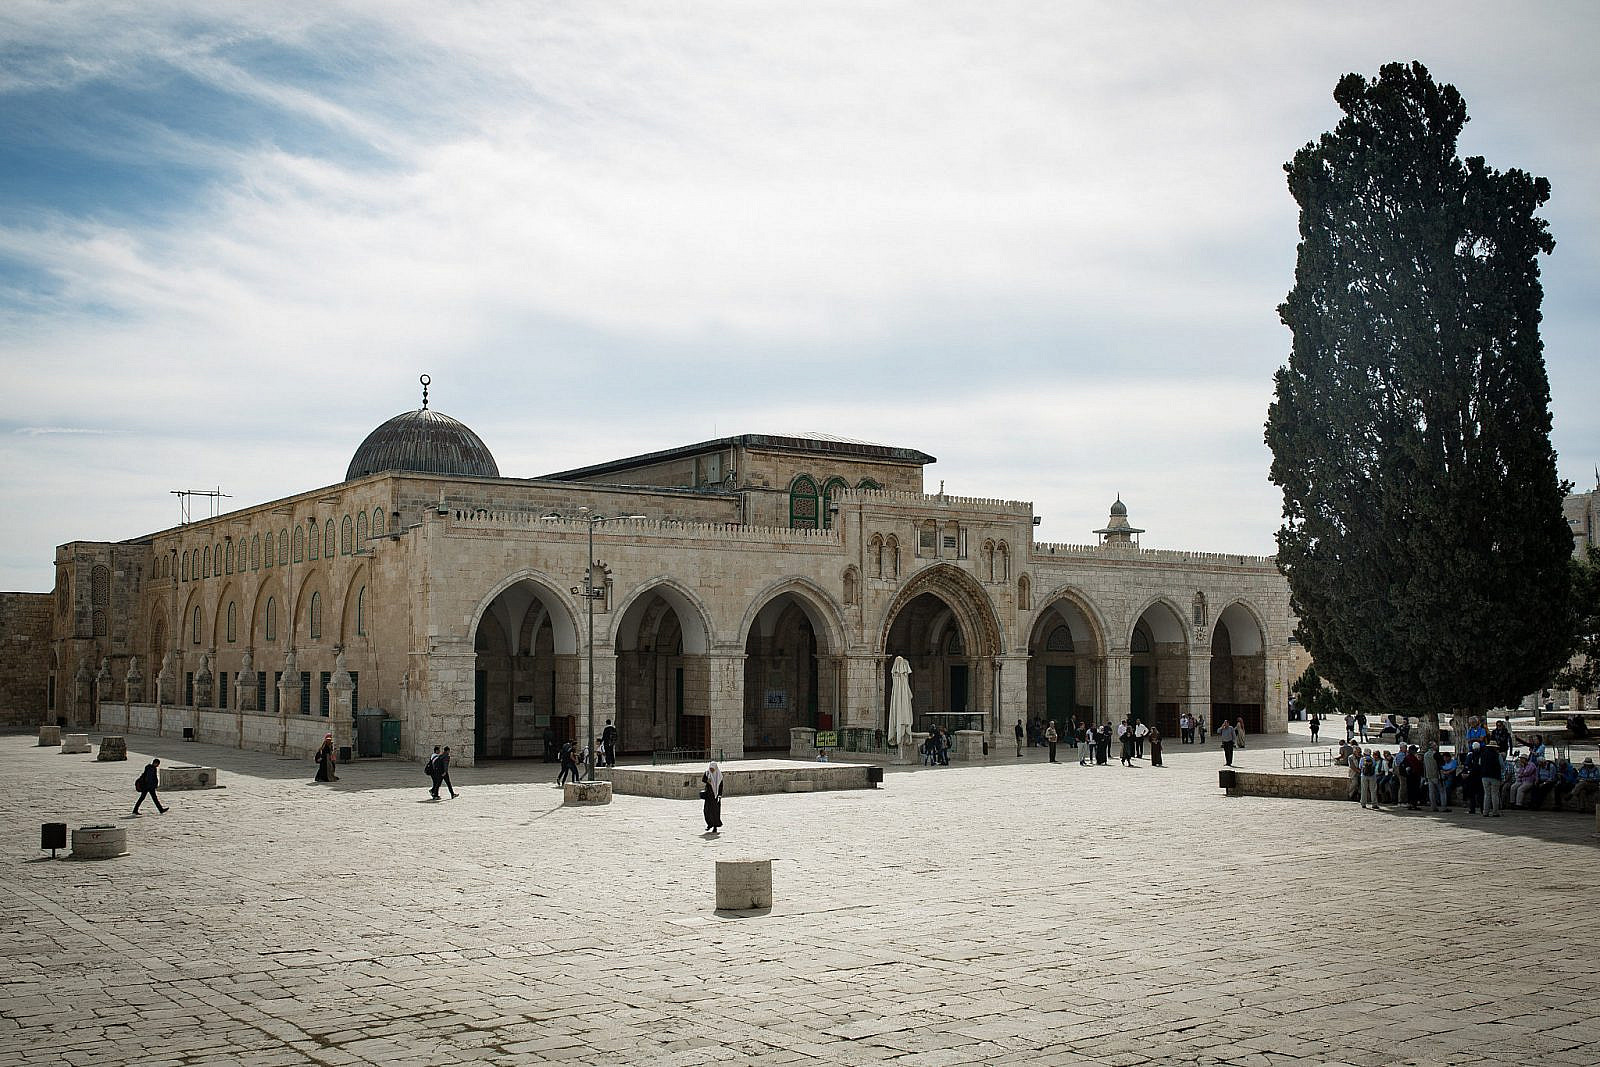 A view of the Al-Aqsa Mosque in the Old City of Jerusalem, located on the Haram al-Sharif (the Noble Sanctuary) or Temple Mount, the third holiest site in Islam after Mecca and Medina. November 7, 2016. (Sebi Berens/Flash90)